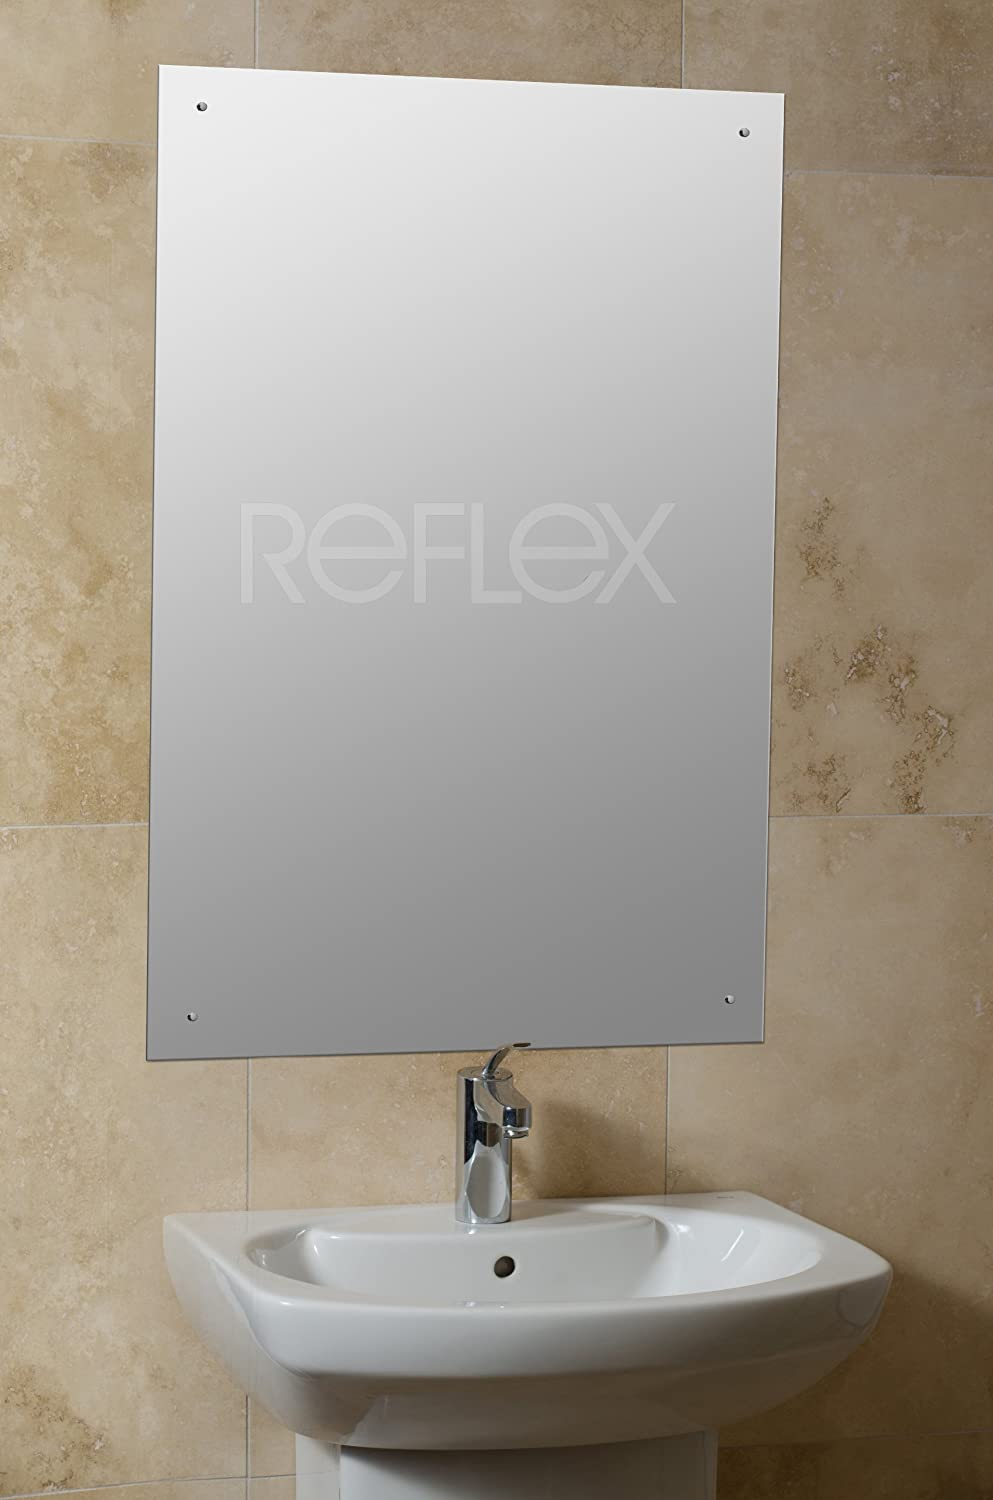 90 X 60cm Rectangle Bathroom Mirror With Drilled Holes Chrome Cap Wall Hanging Fixing Kit Amazoncouk Kitchen Home